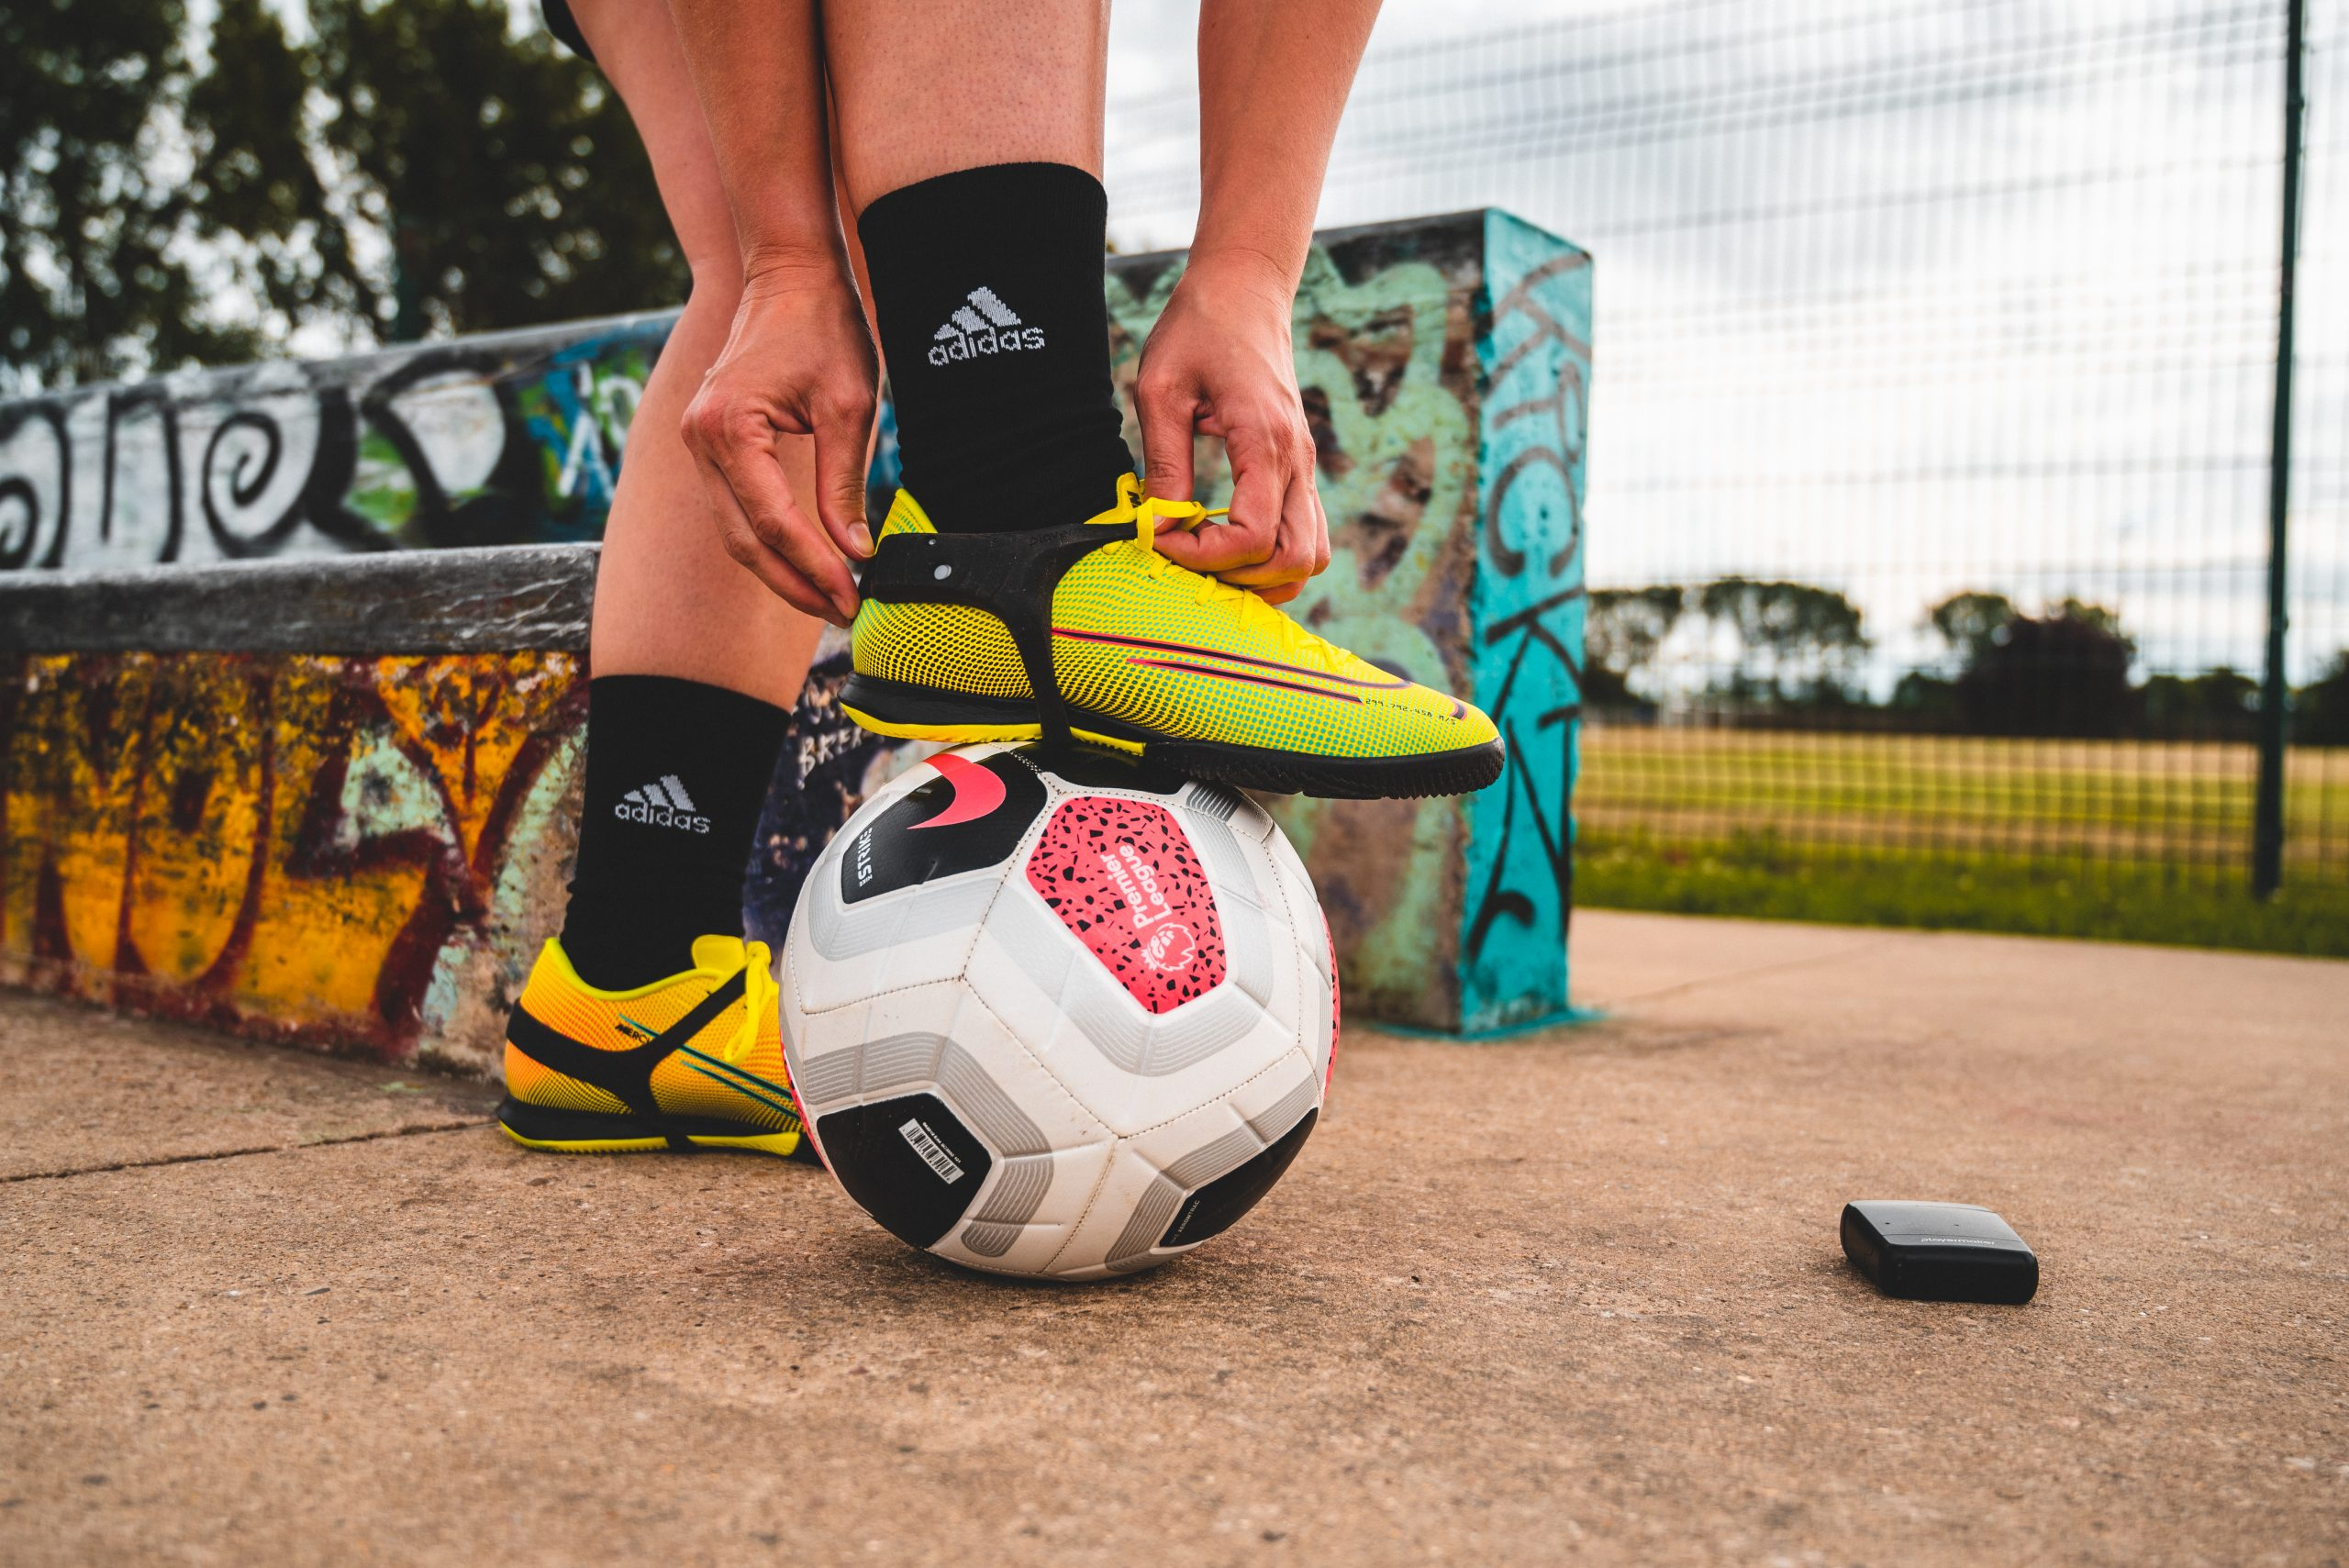 Otelli marketing working with a football company Playermaker on a photography shoot. Sport marketing